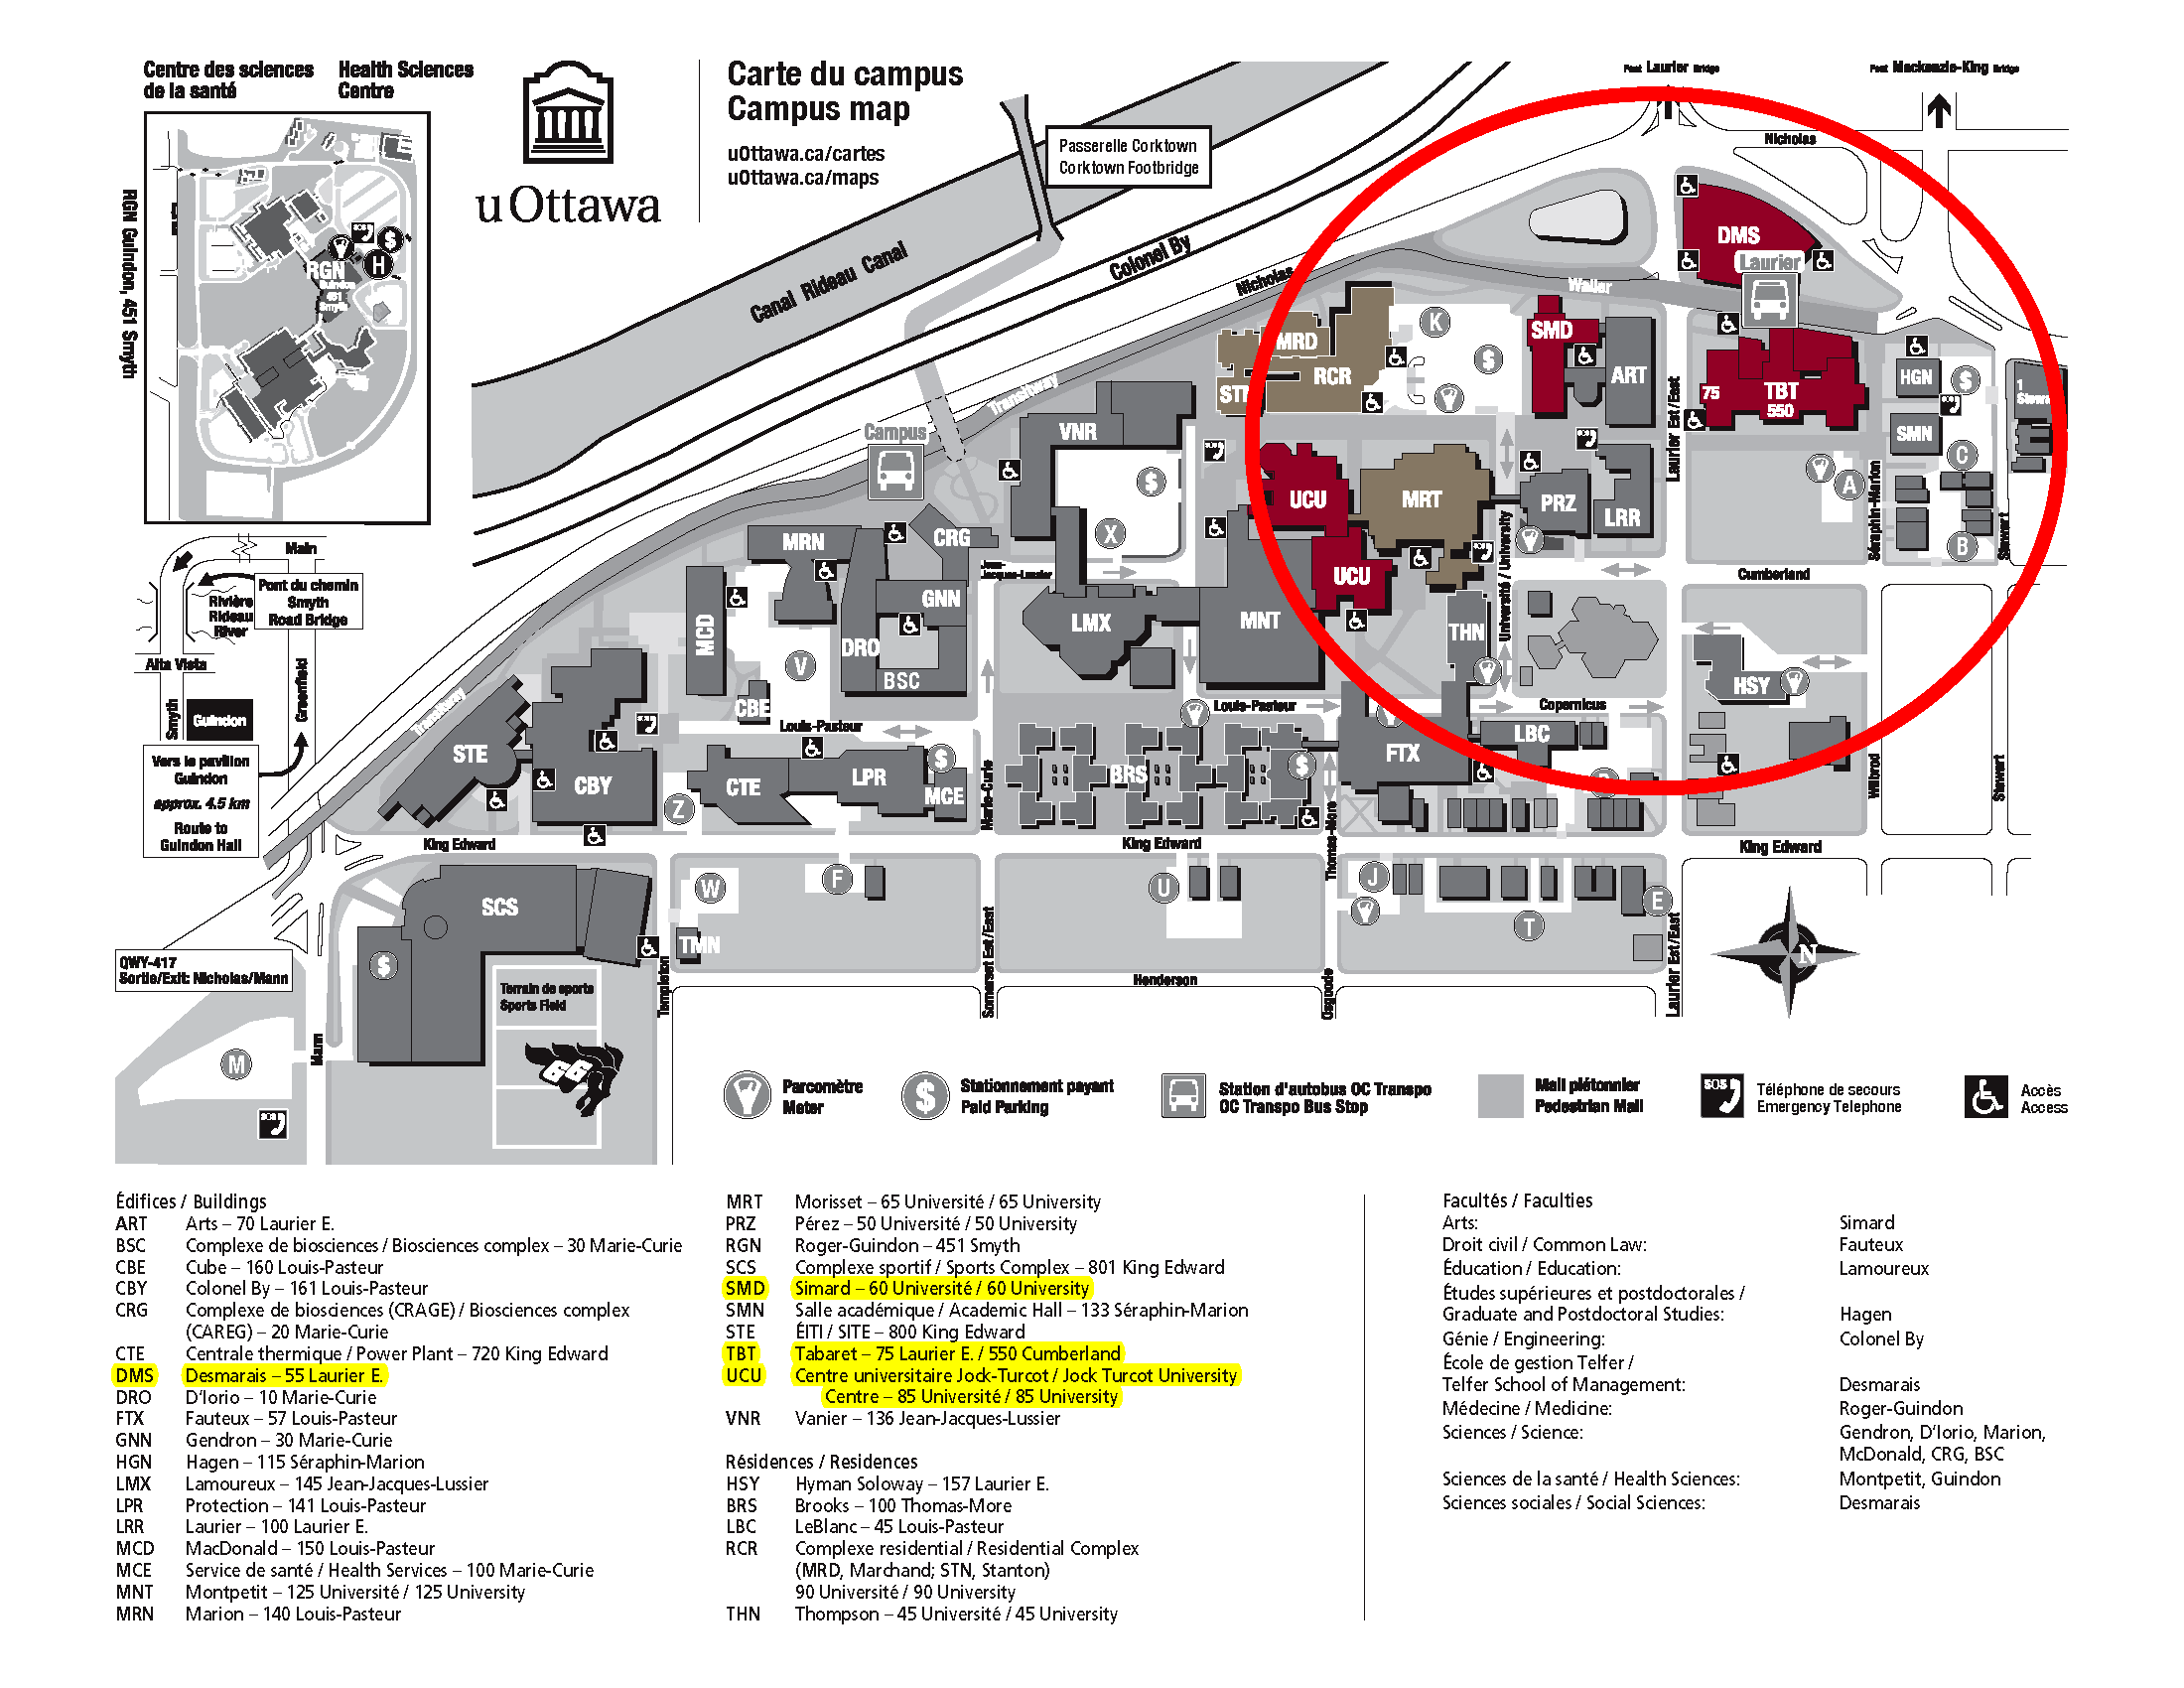 University Of Ottawa Campus Map Welcome to JCDL2011 | JCDL 2011 University Of Ottawa Campus Map